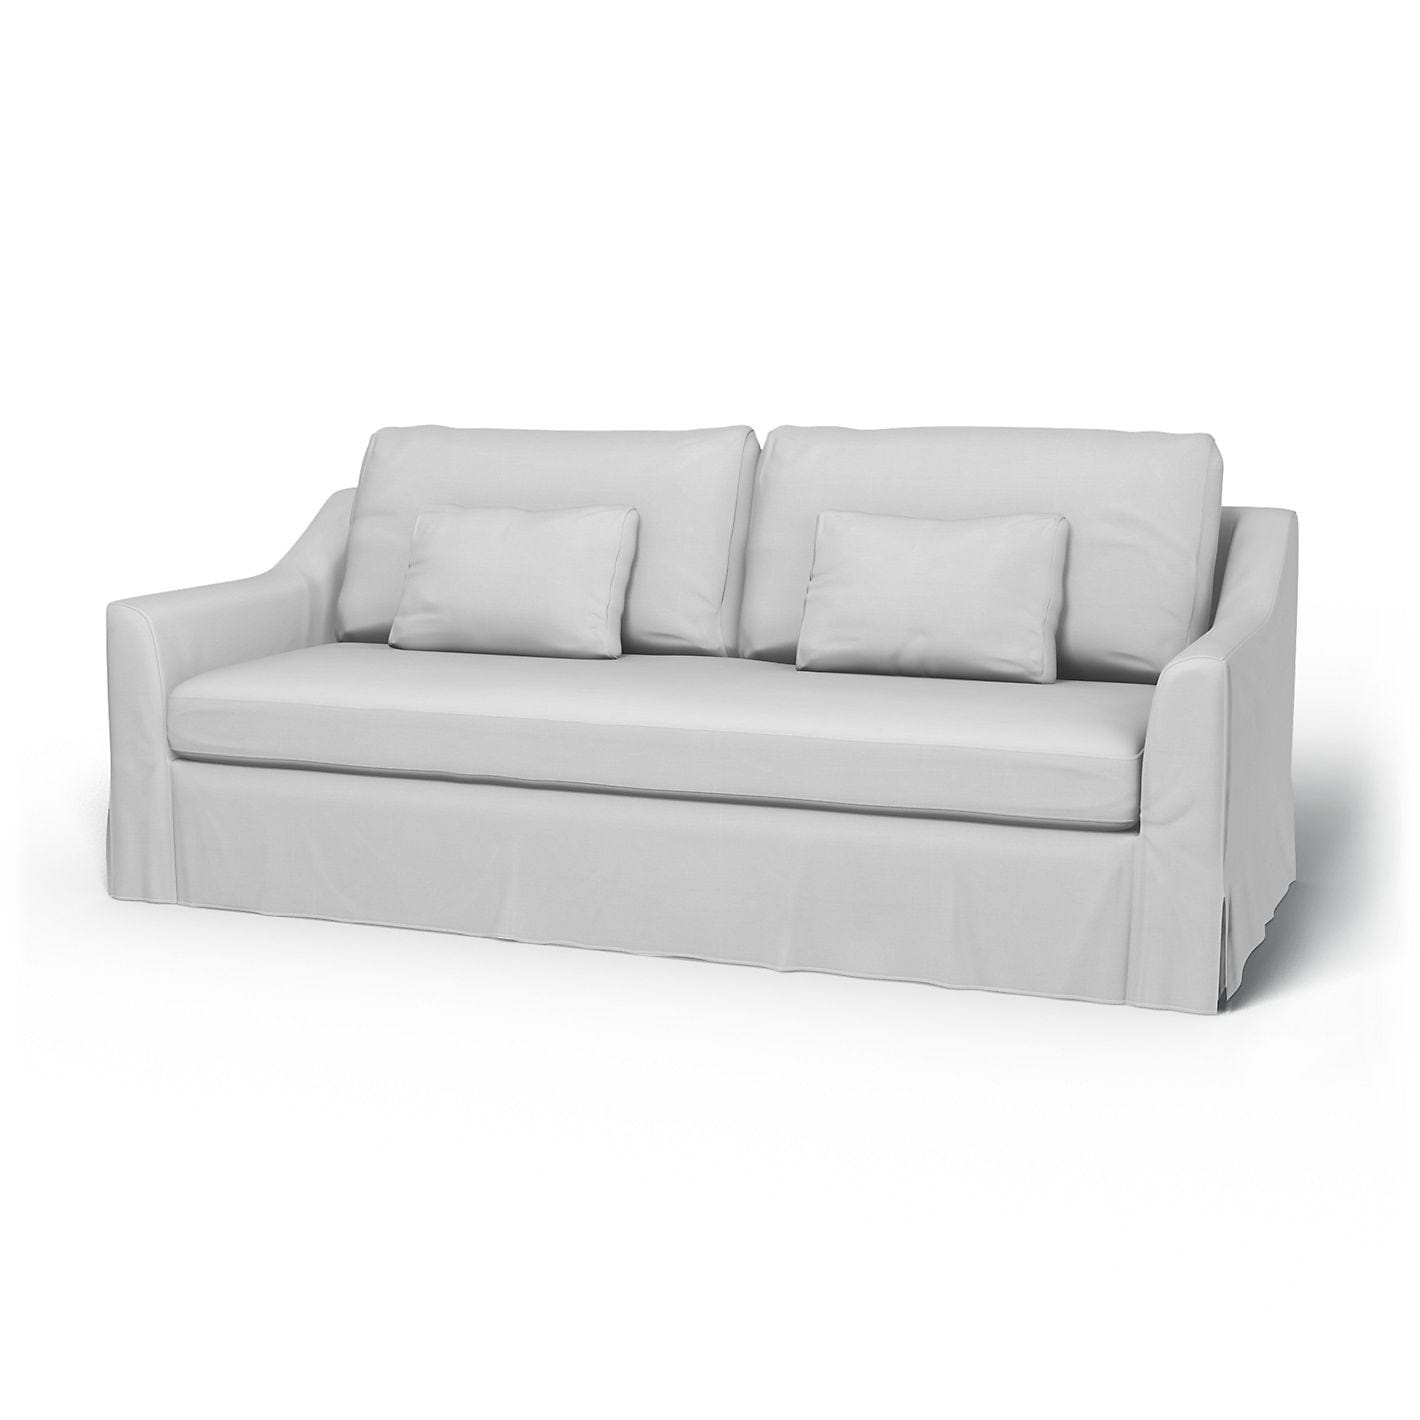 Excellent Sofa Covers For Ikea Couches Bemz Uwap Interior Chair Design Uwaporg